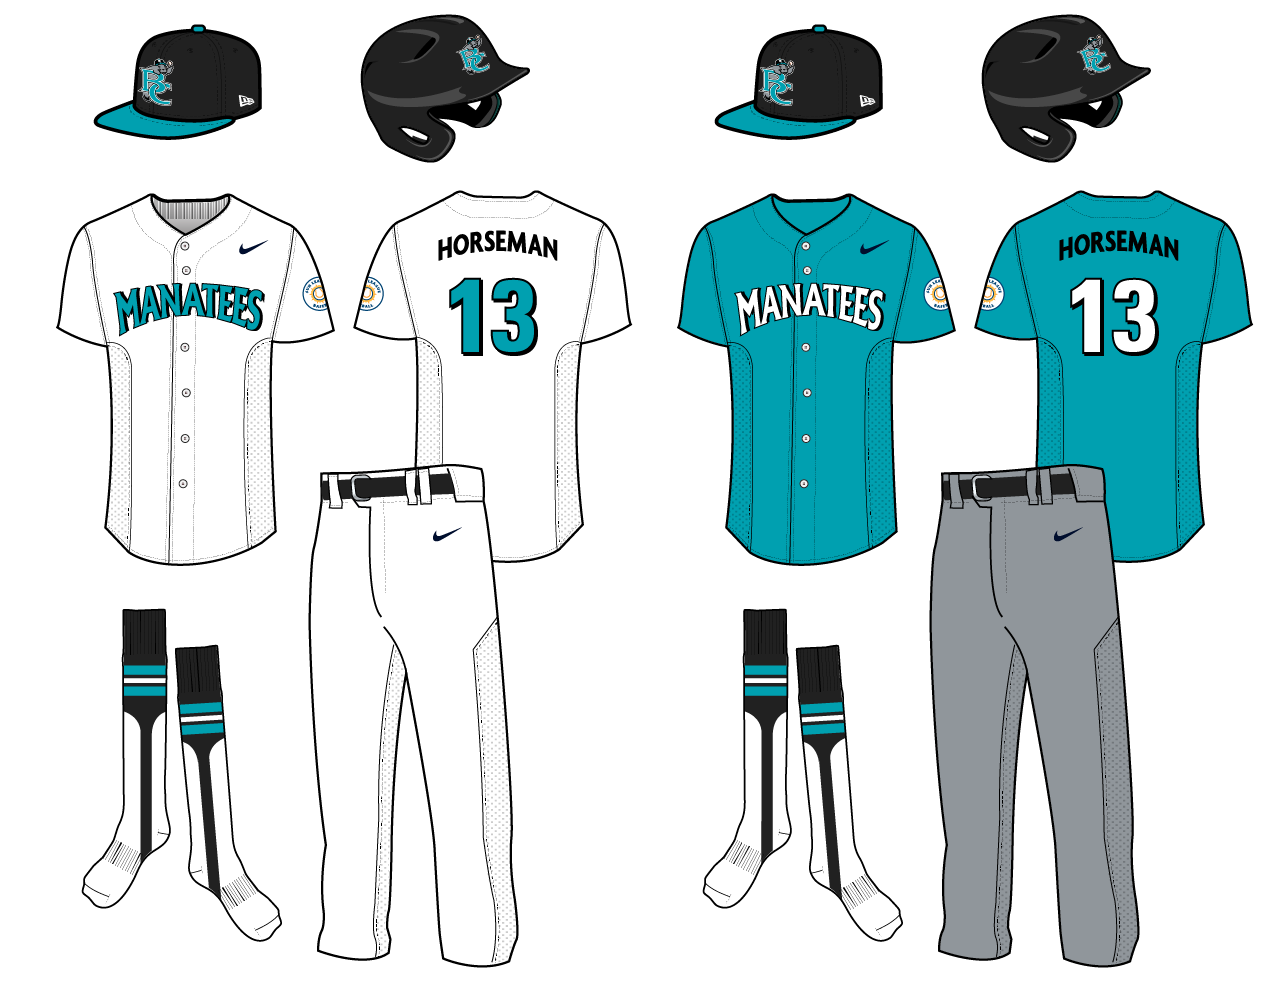 Brevard-County-Uniforms-01.png